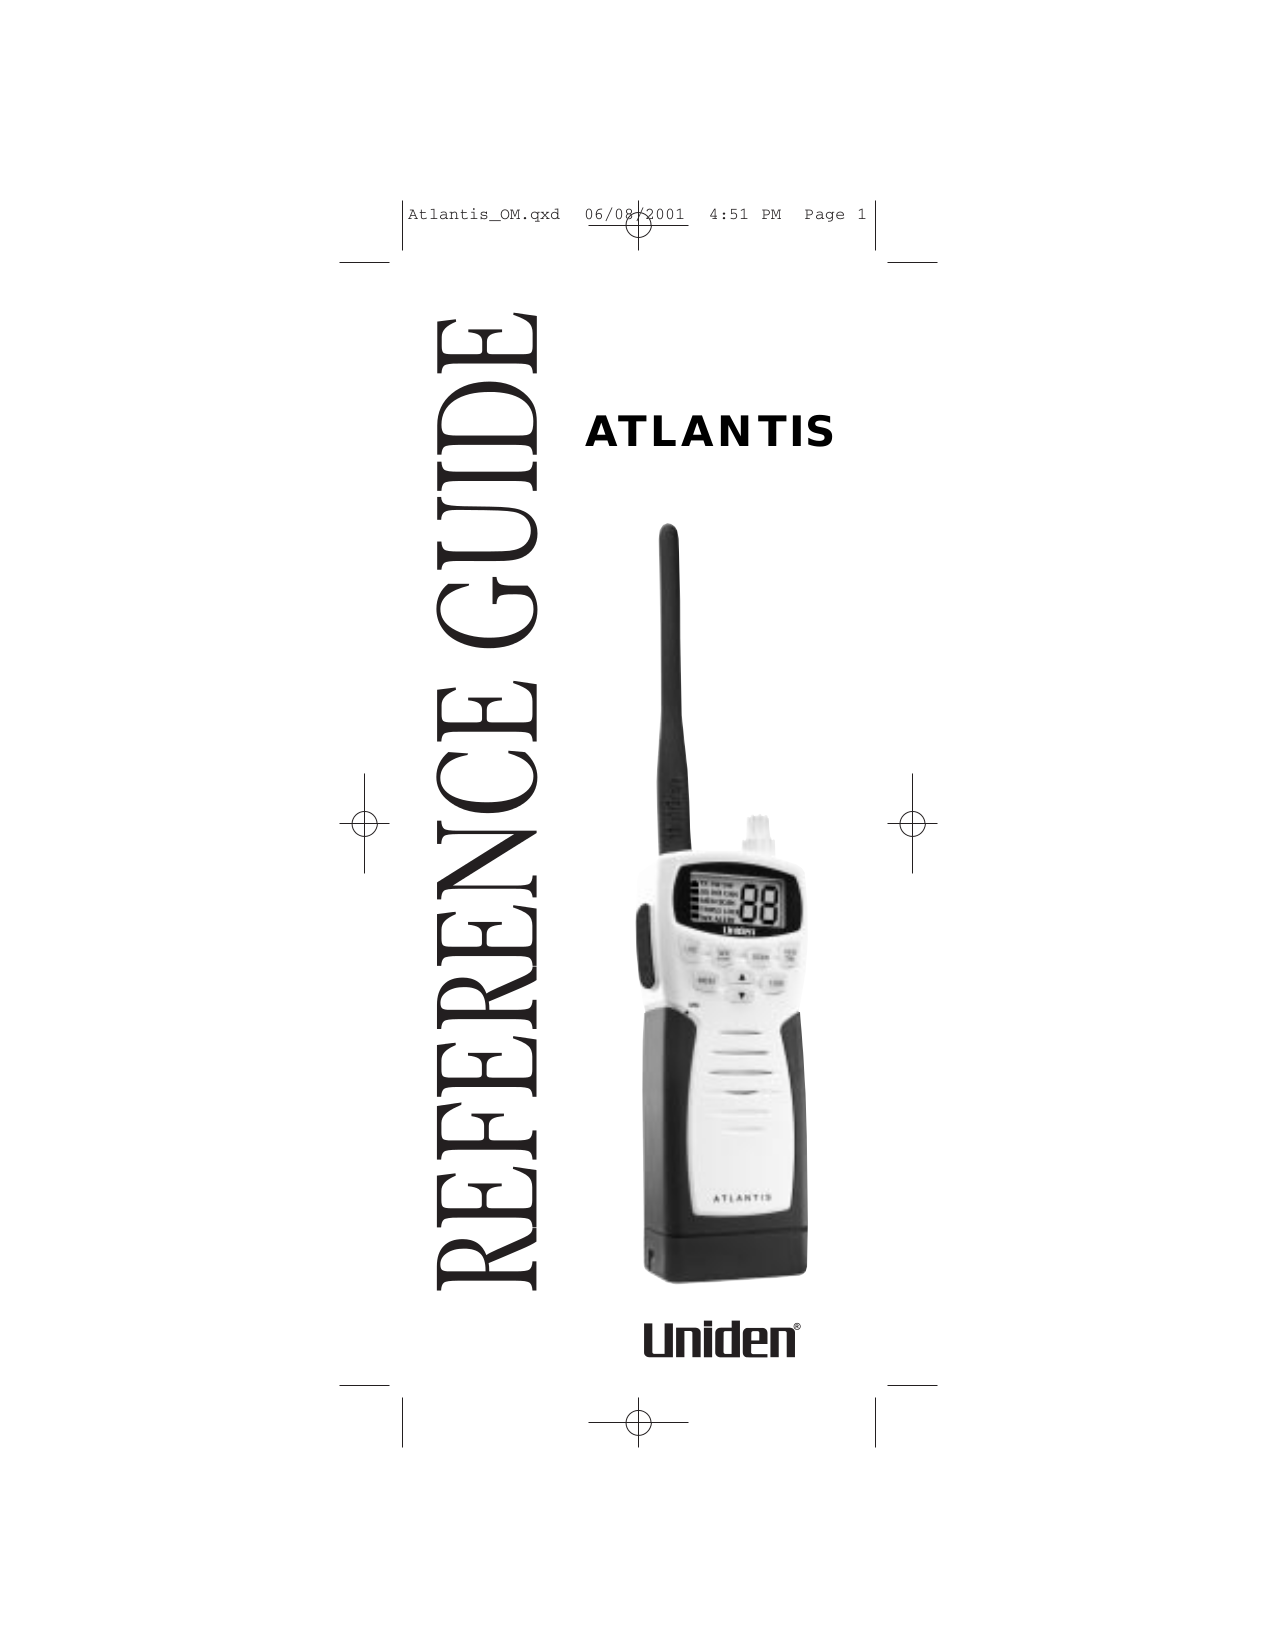 pdf for Uniden 2-way Radio ATLANTIS manual